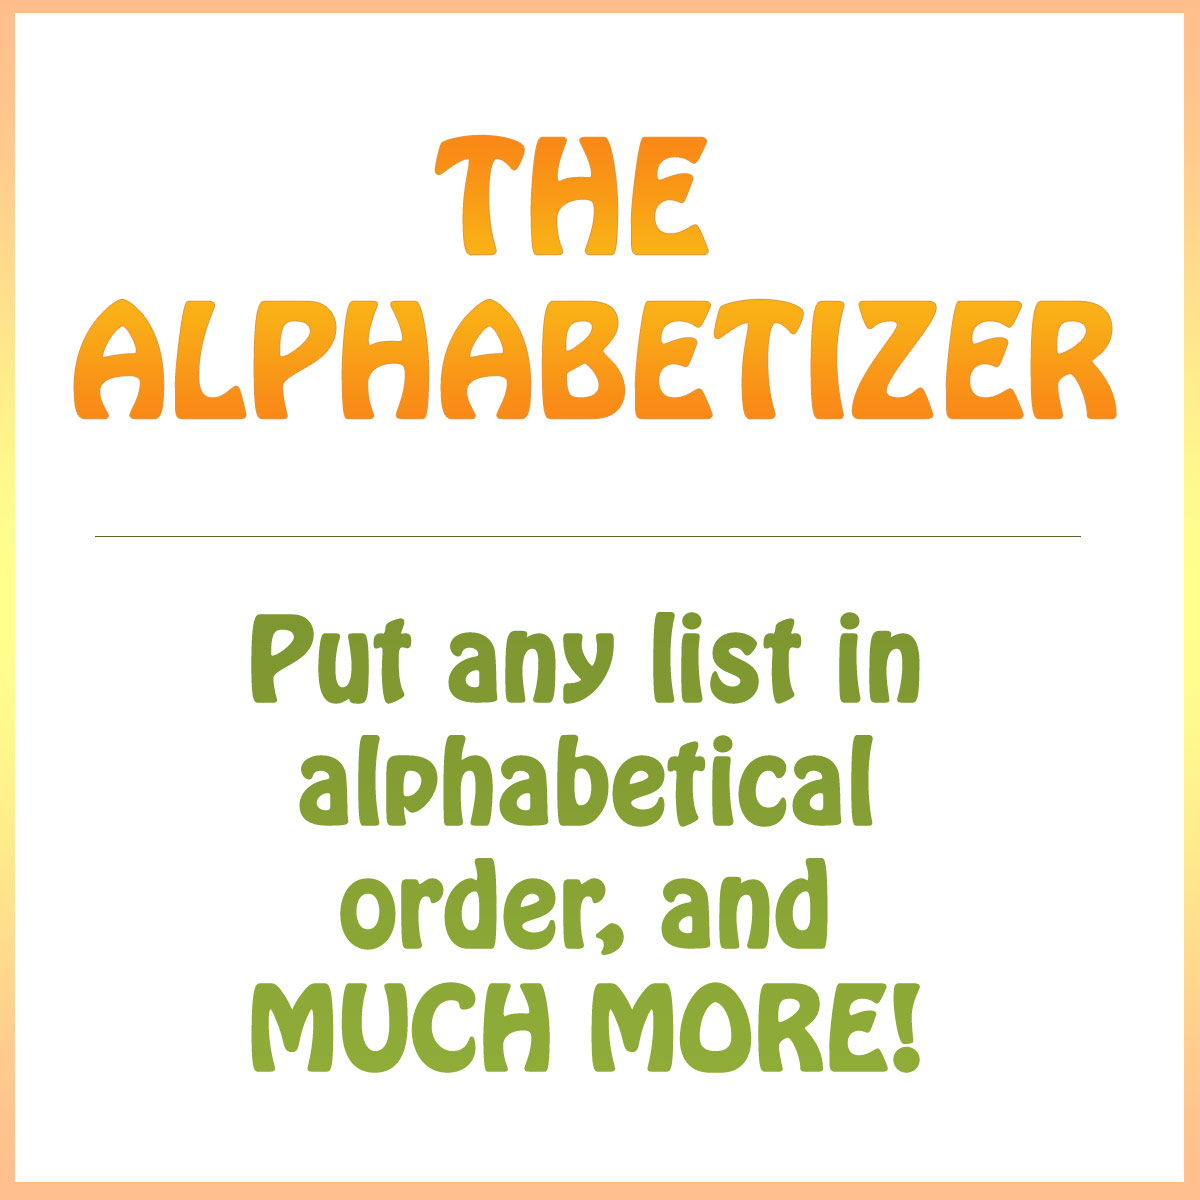 Alphabetize a list in alphabetical order - and much more!